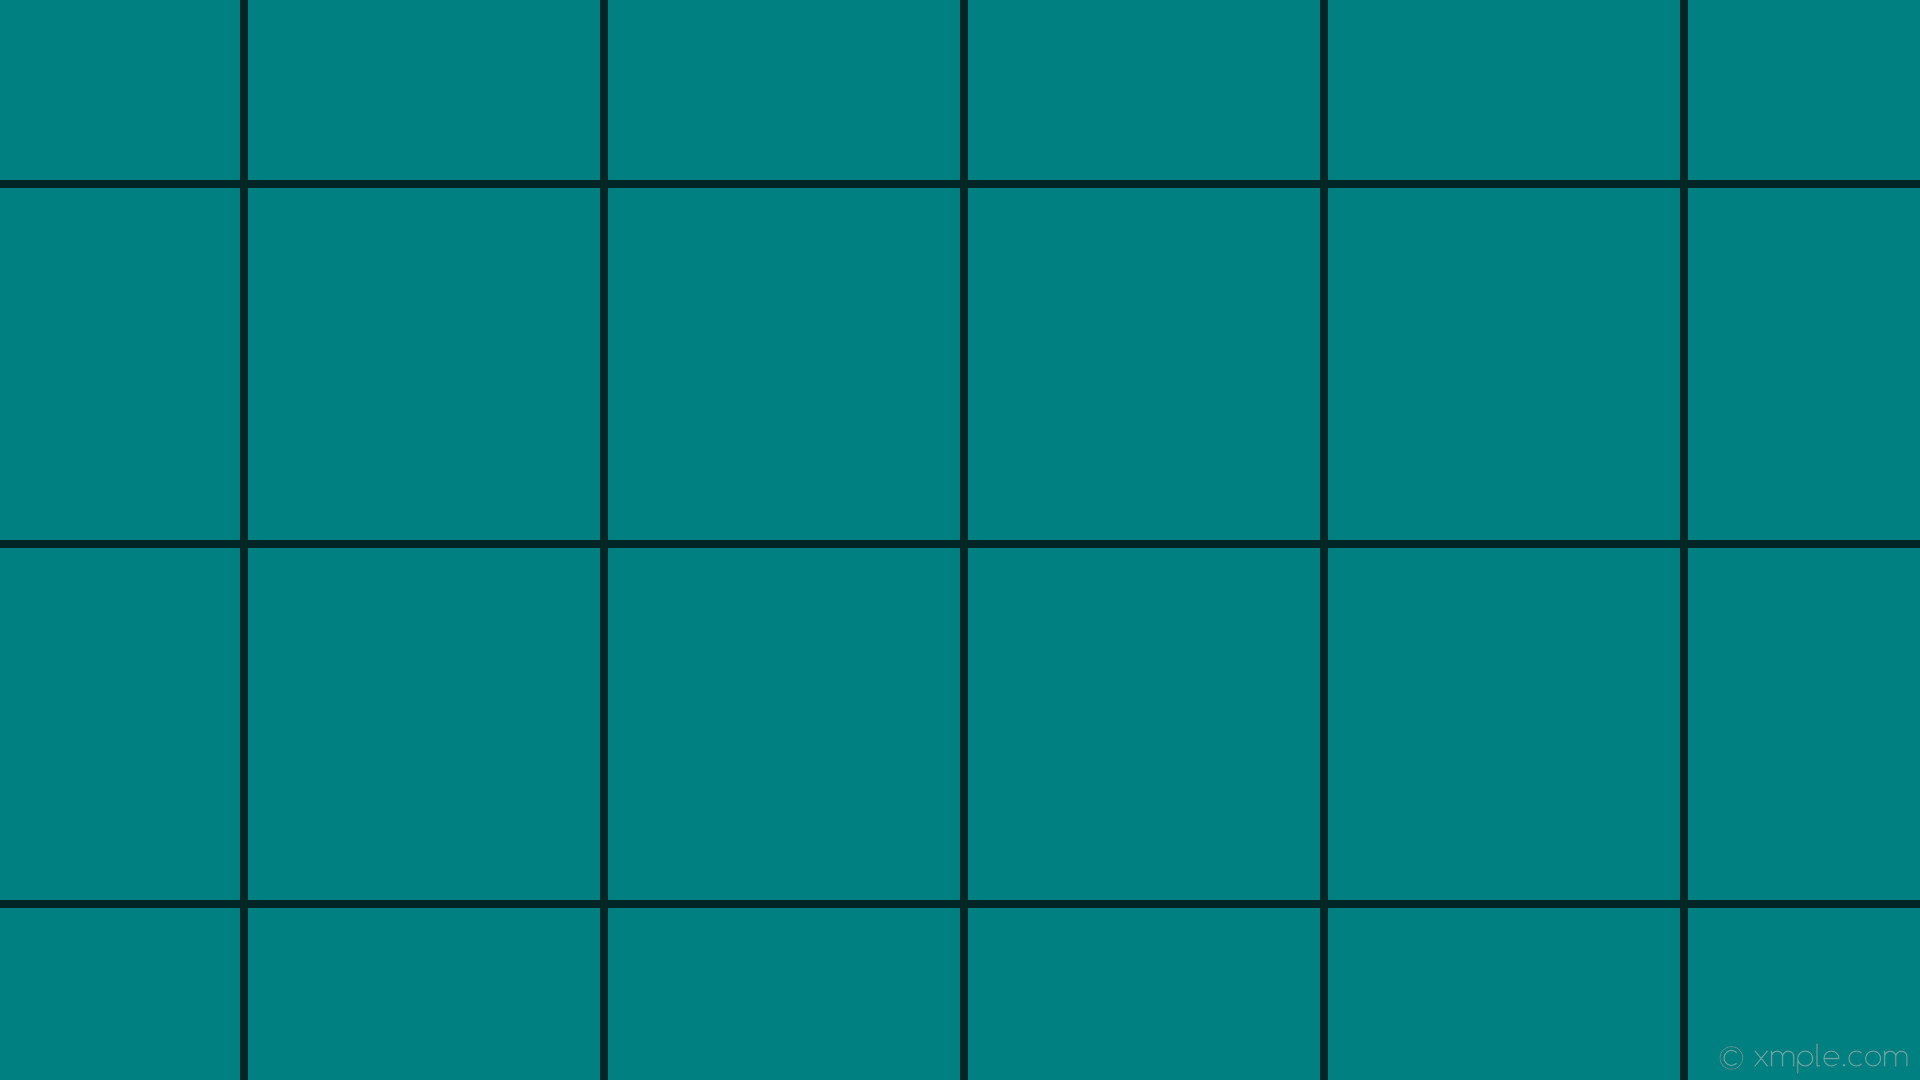 wallpaper graph paper green black grid teal #008080 #000000 0° 8px 360px